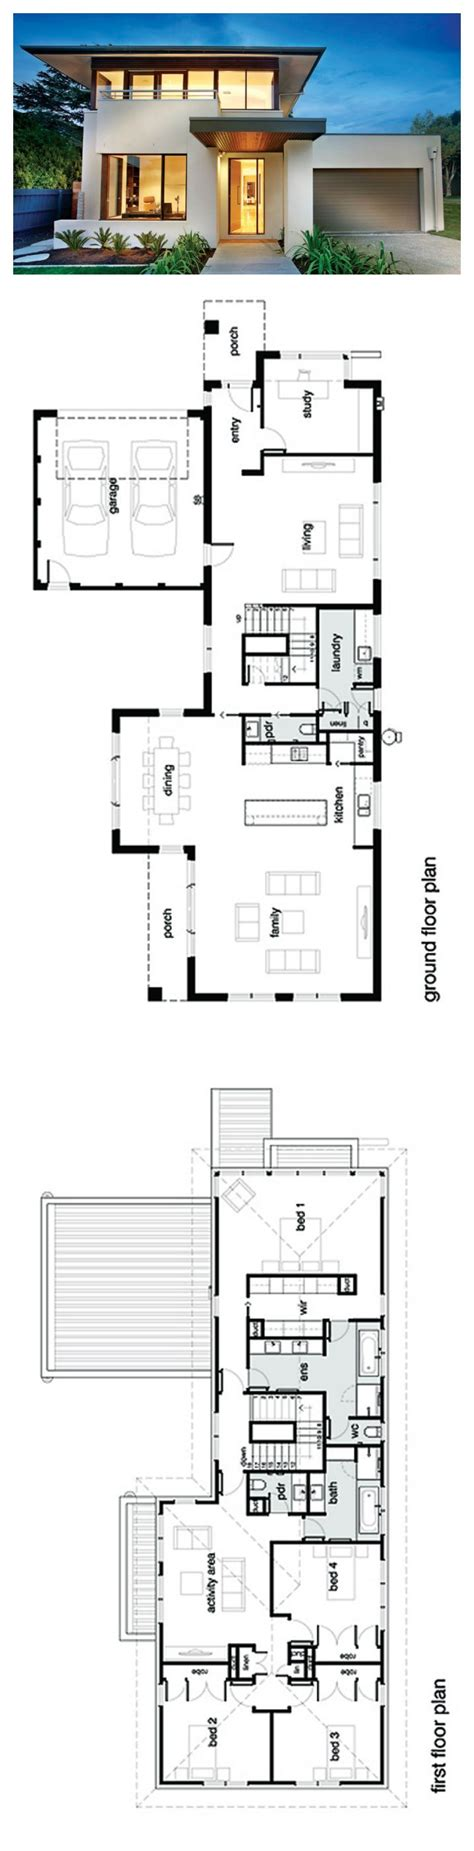 modern house floor plans the 25 best ideas about modern house plans on modern house floor plans modern